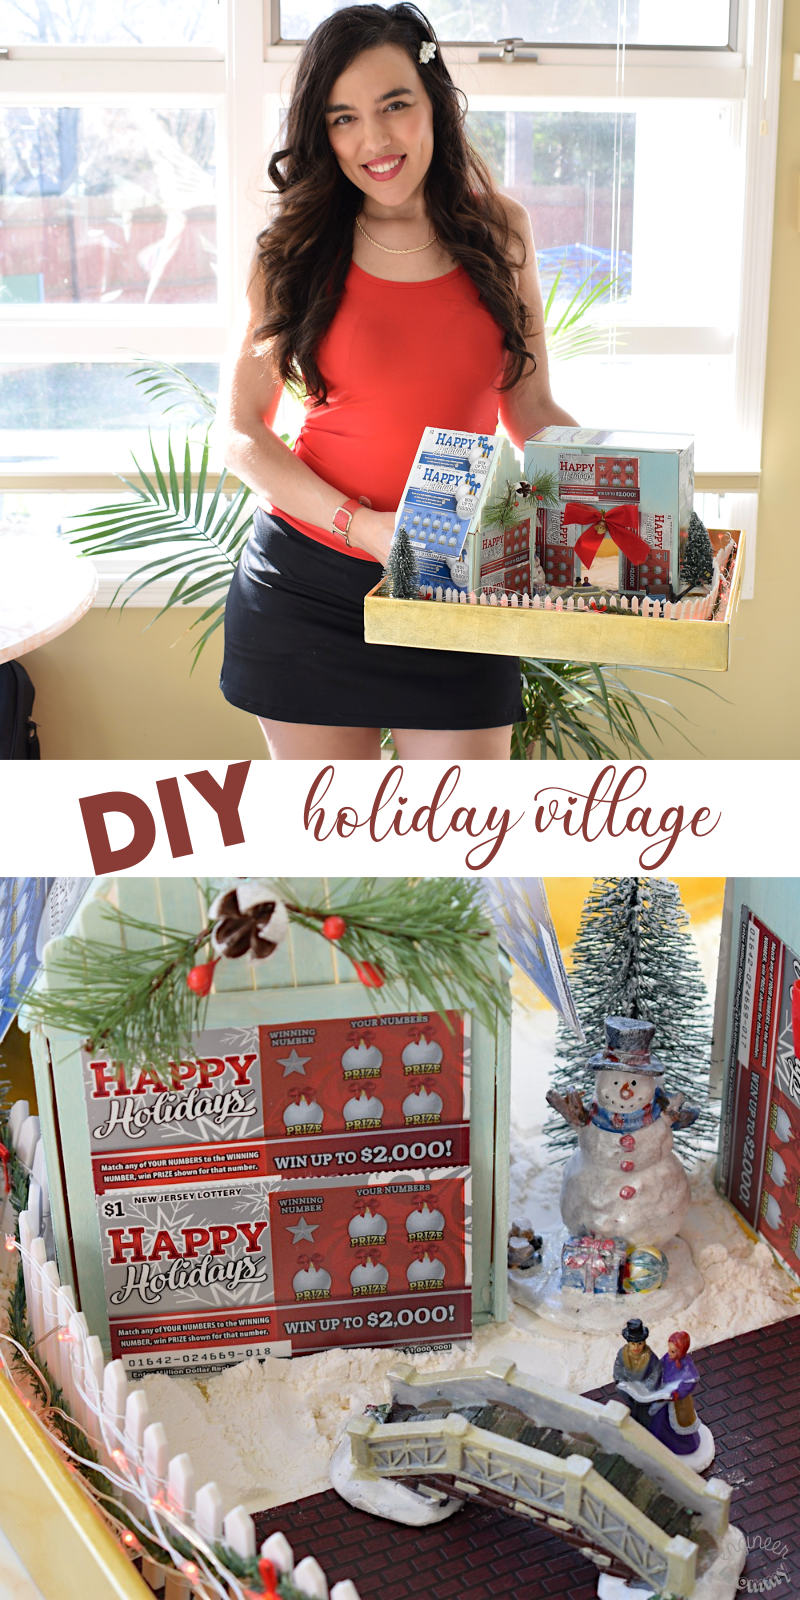 DIY Holiday Village with NJ Lottery Games